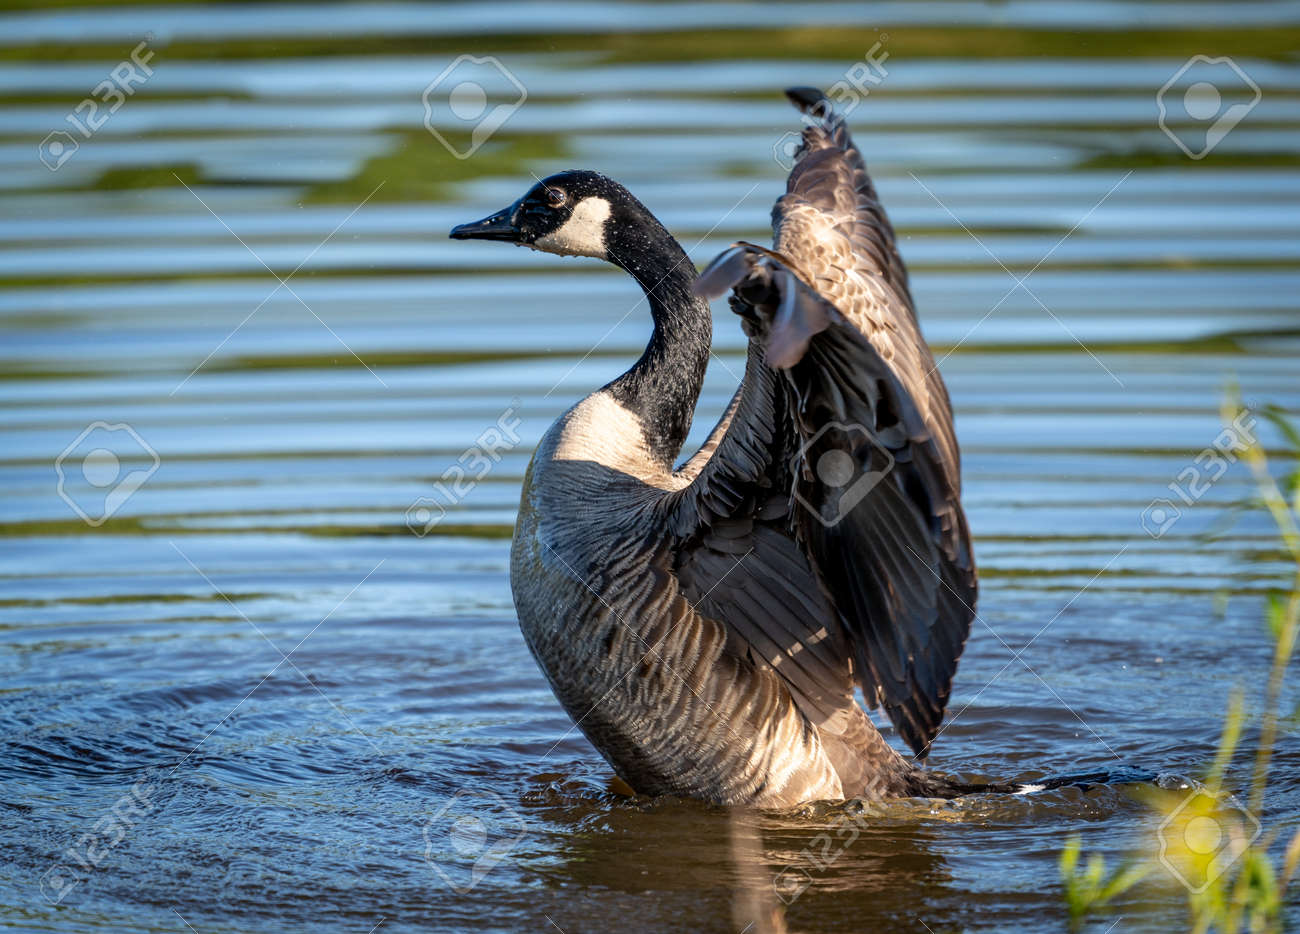 A Canada Goose flapping its wings in a lake. - 170388682